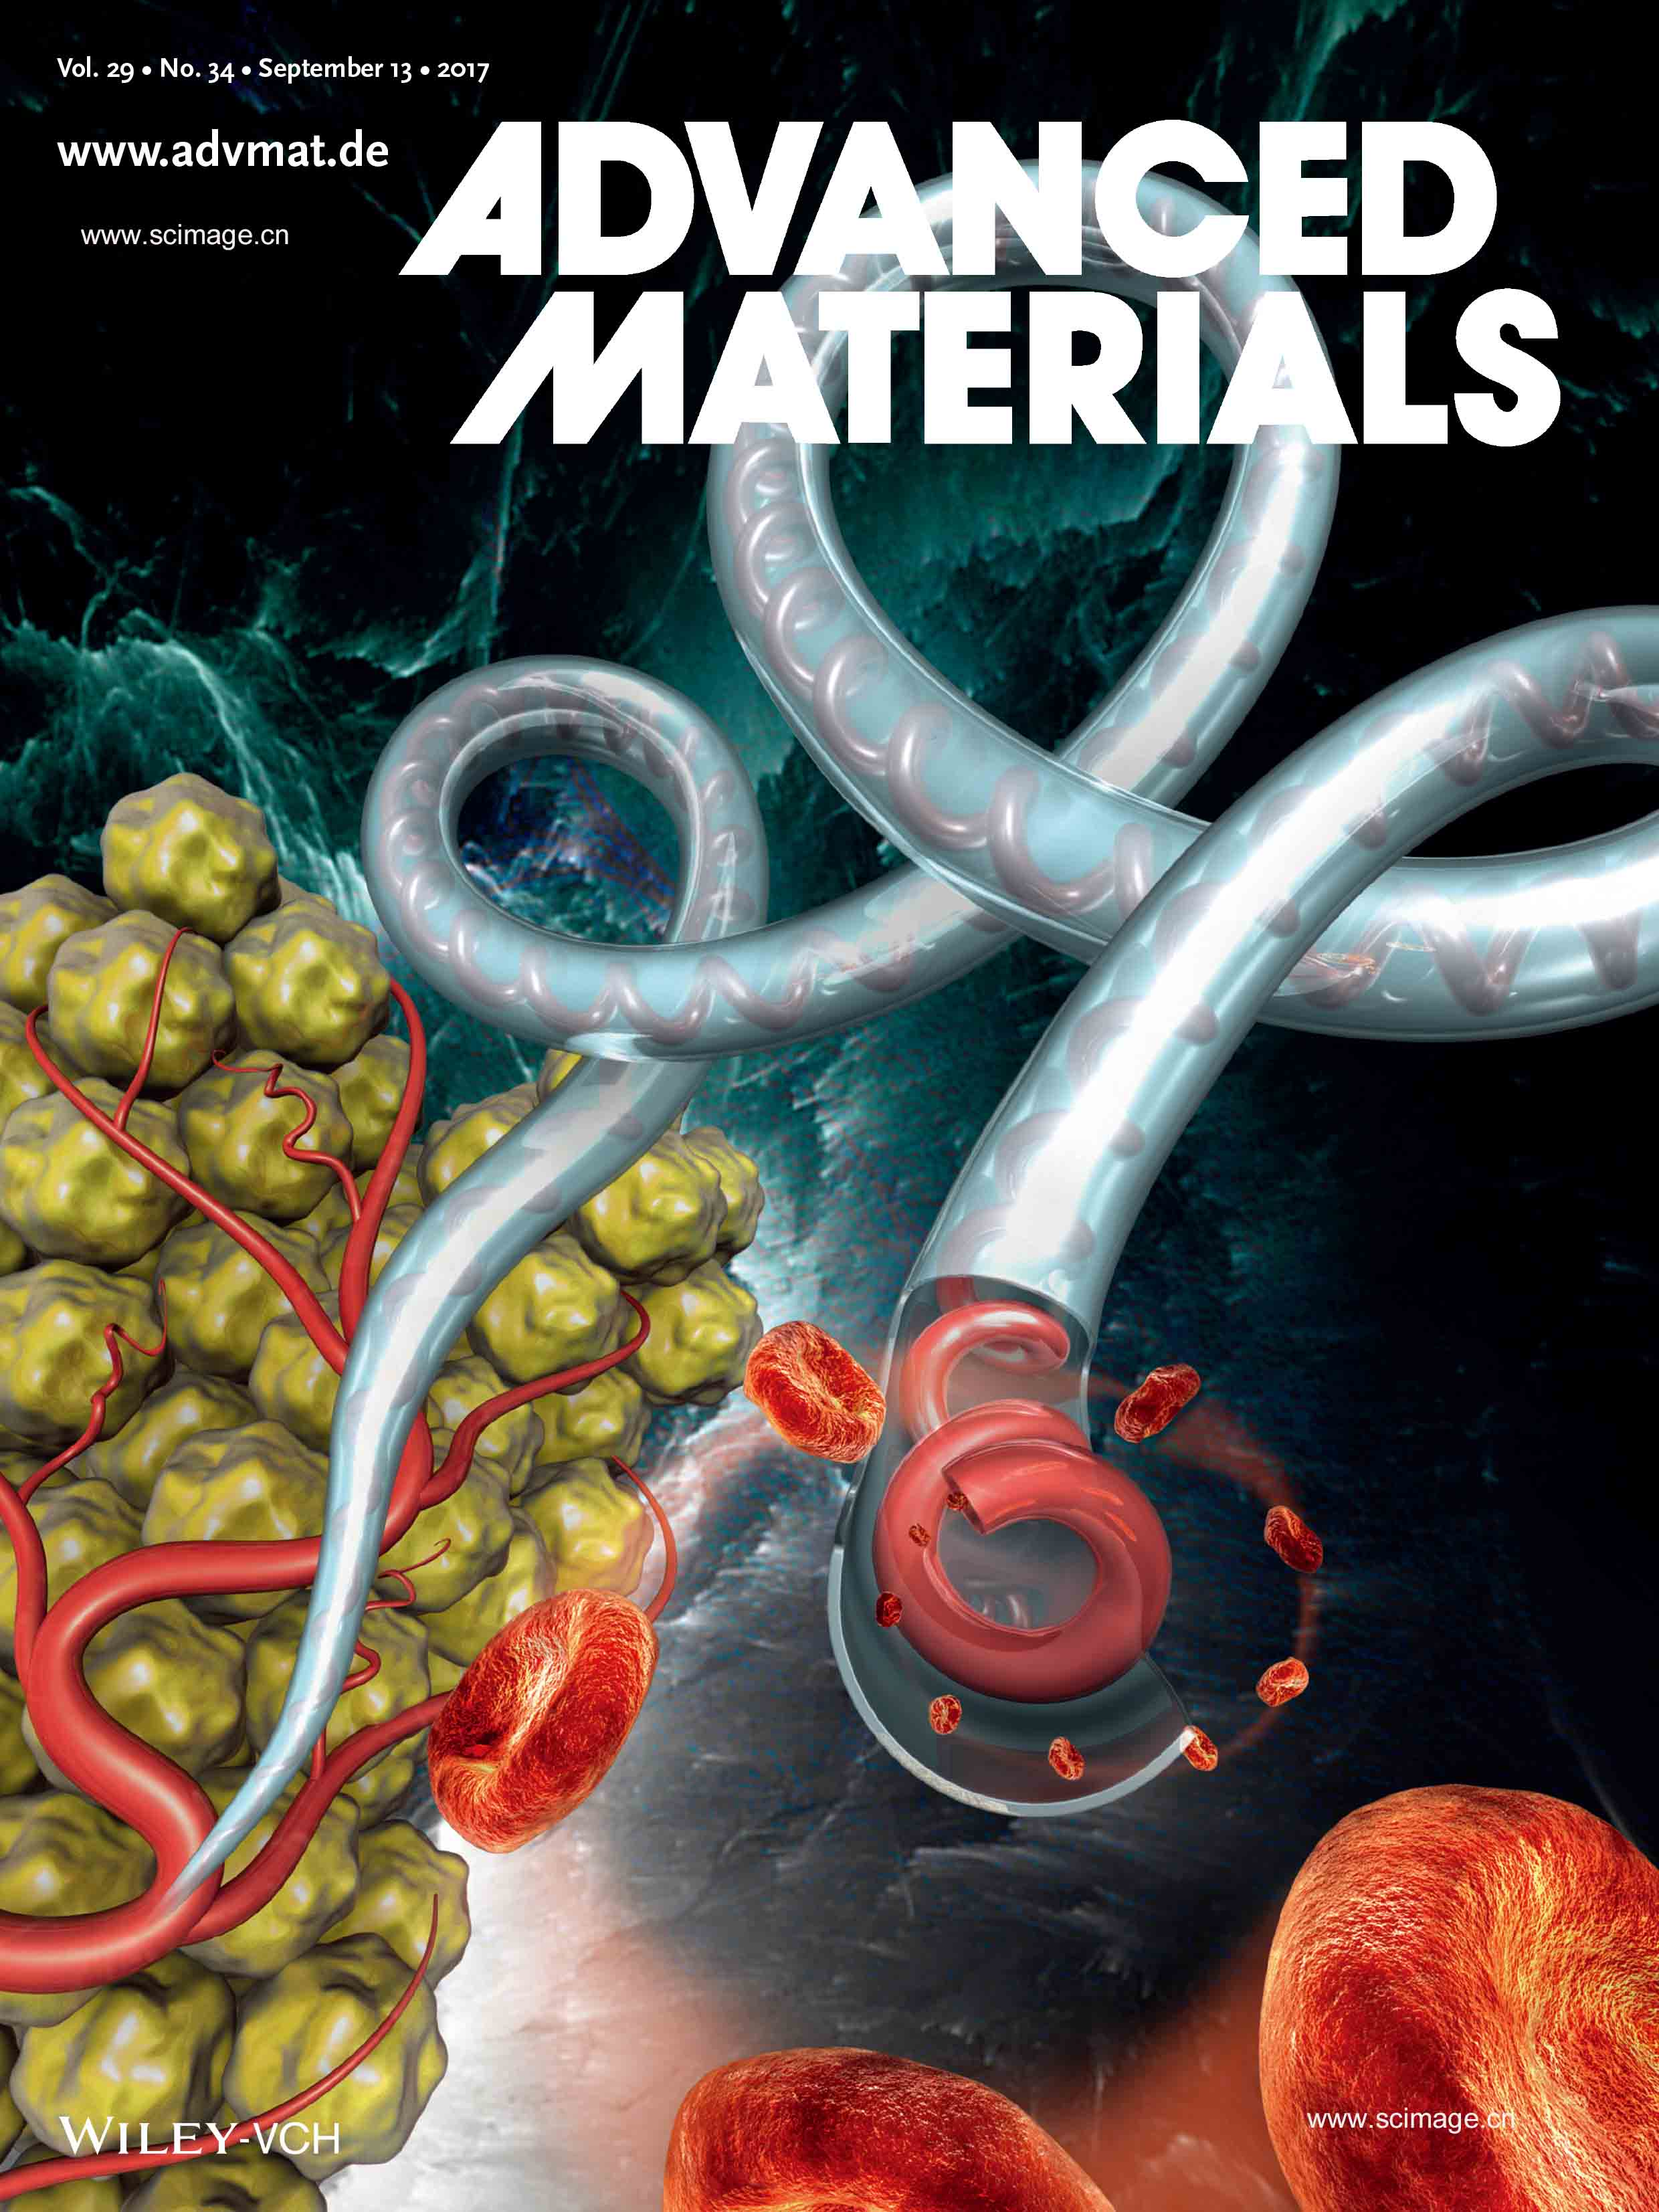 Microfibers: Bioinspired Microfibers with Embedded Perfusable Helical Channels